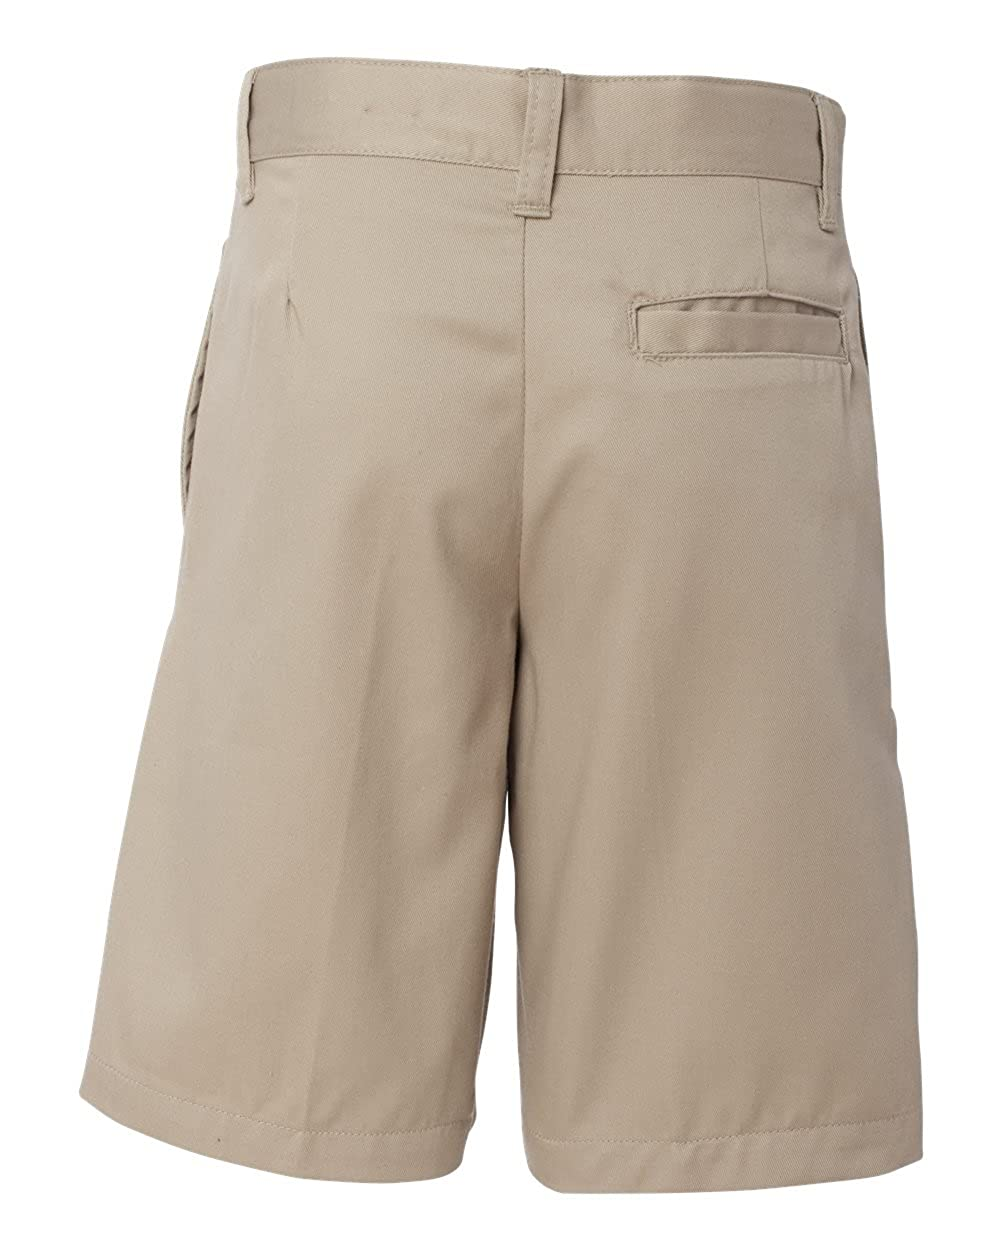 French Toast School Uniform Boys Flat Front Adjustable Waist Shorts, Khaki, 12